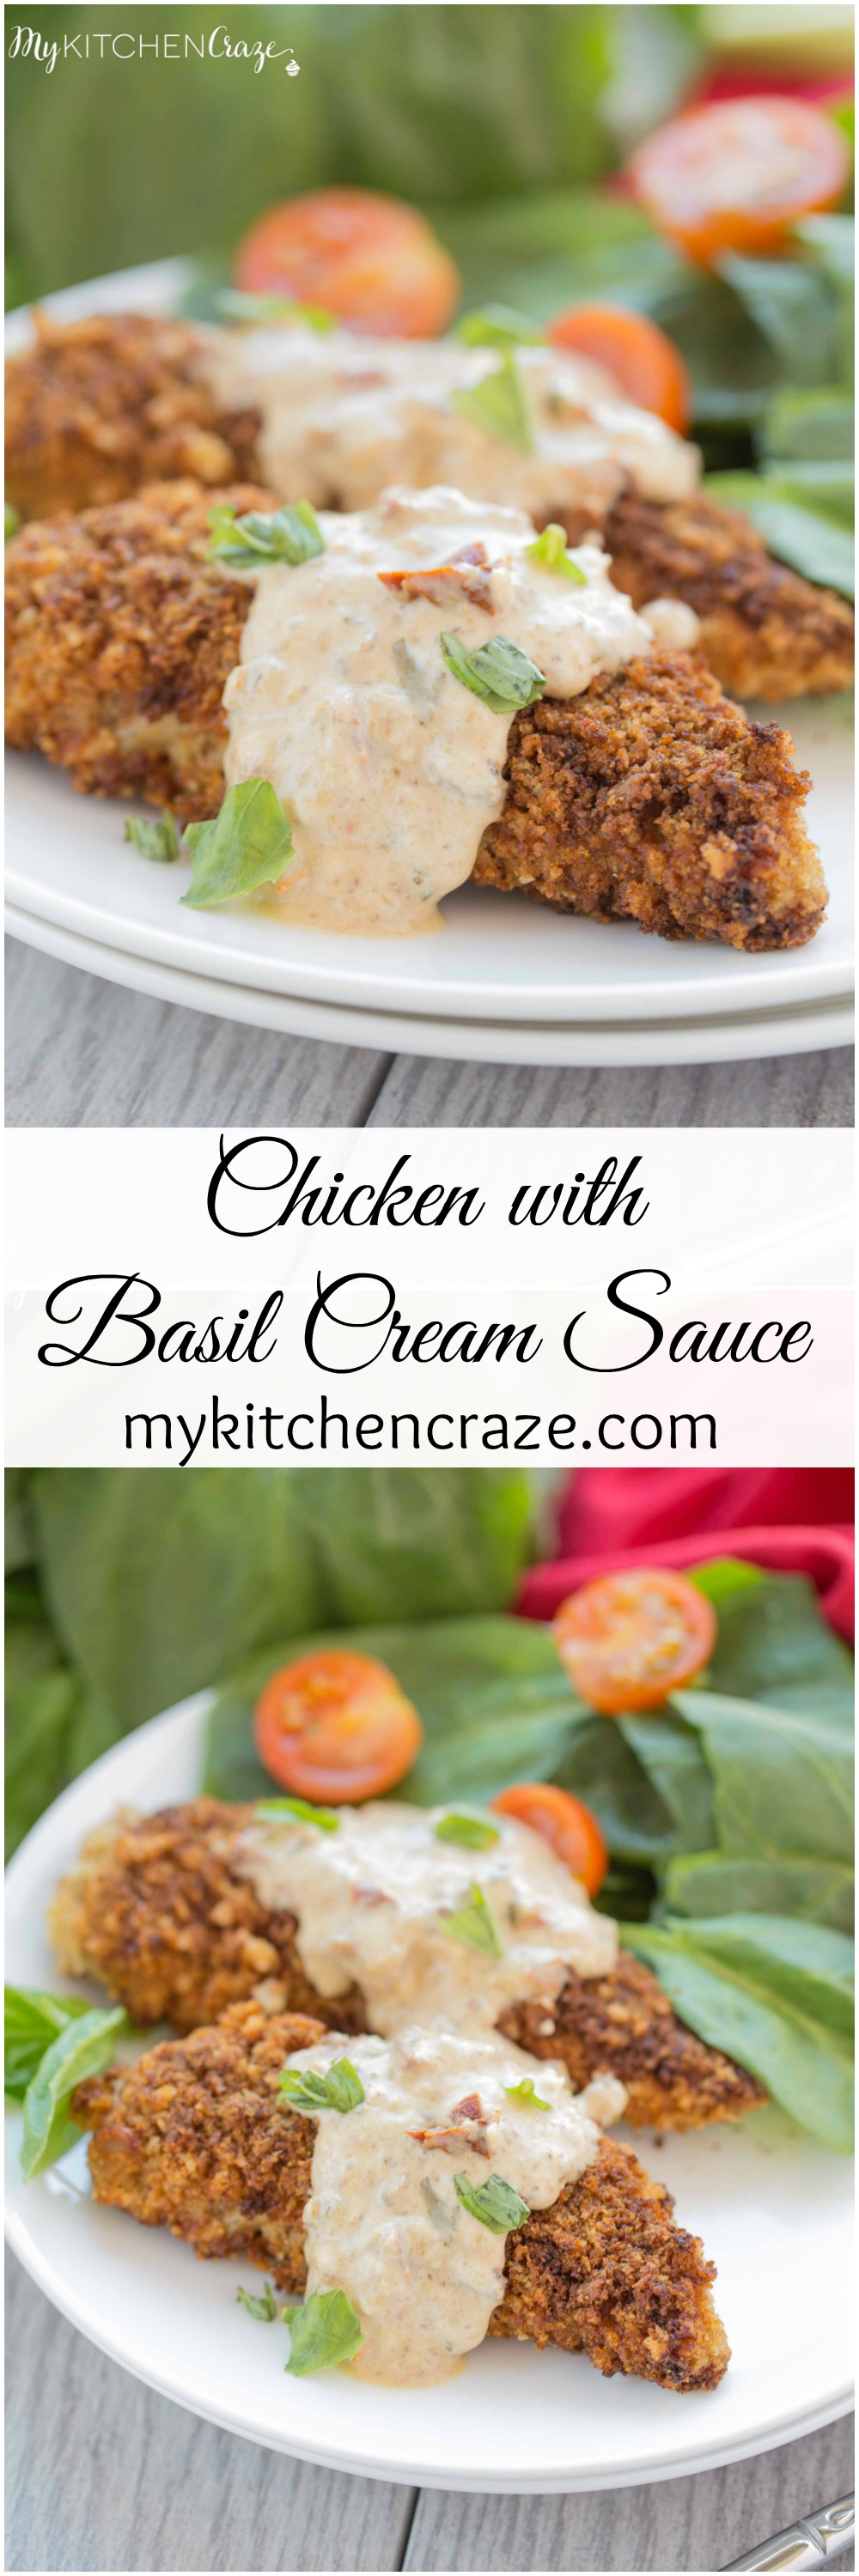 Chicken with Basil Cream Sauce ~ mykitchencraze.com ~ Sick of the same old chicken? Then you need to try this delicious Chicken with Basil Cream Sauce. You'll never go back to plain chicken again.